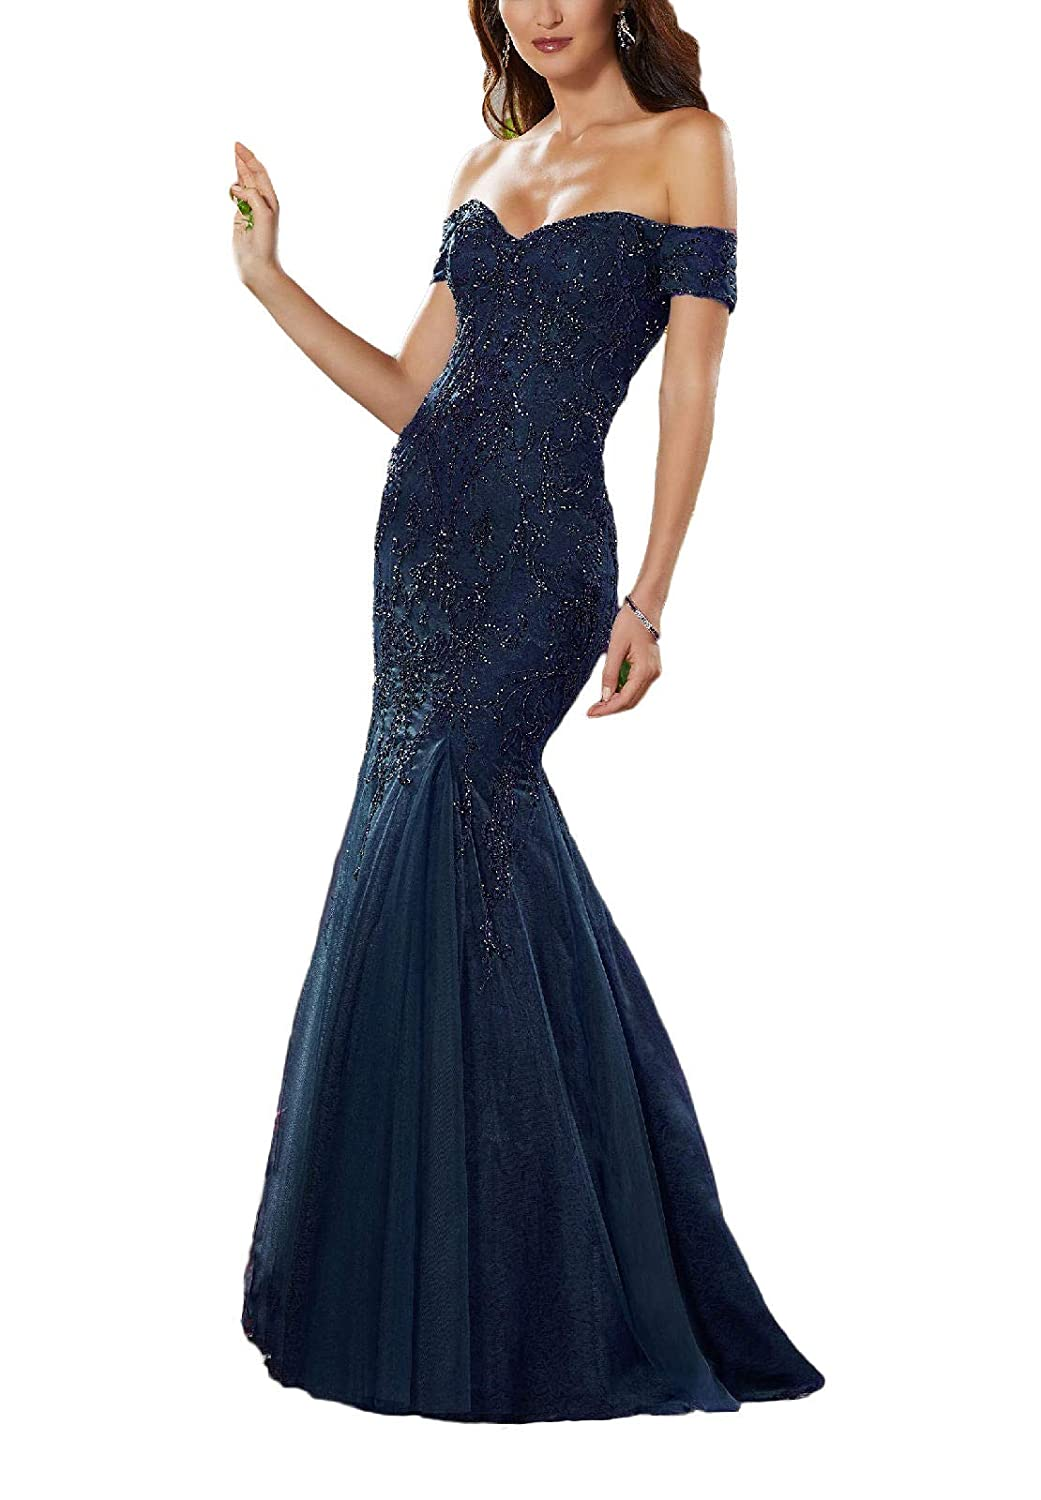 Navebluee Yisha Bello Women's Off The Shoulder Mermaid Crystal Beaded Prom Dress Long Lace Evening Formal Gowns